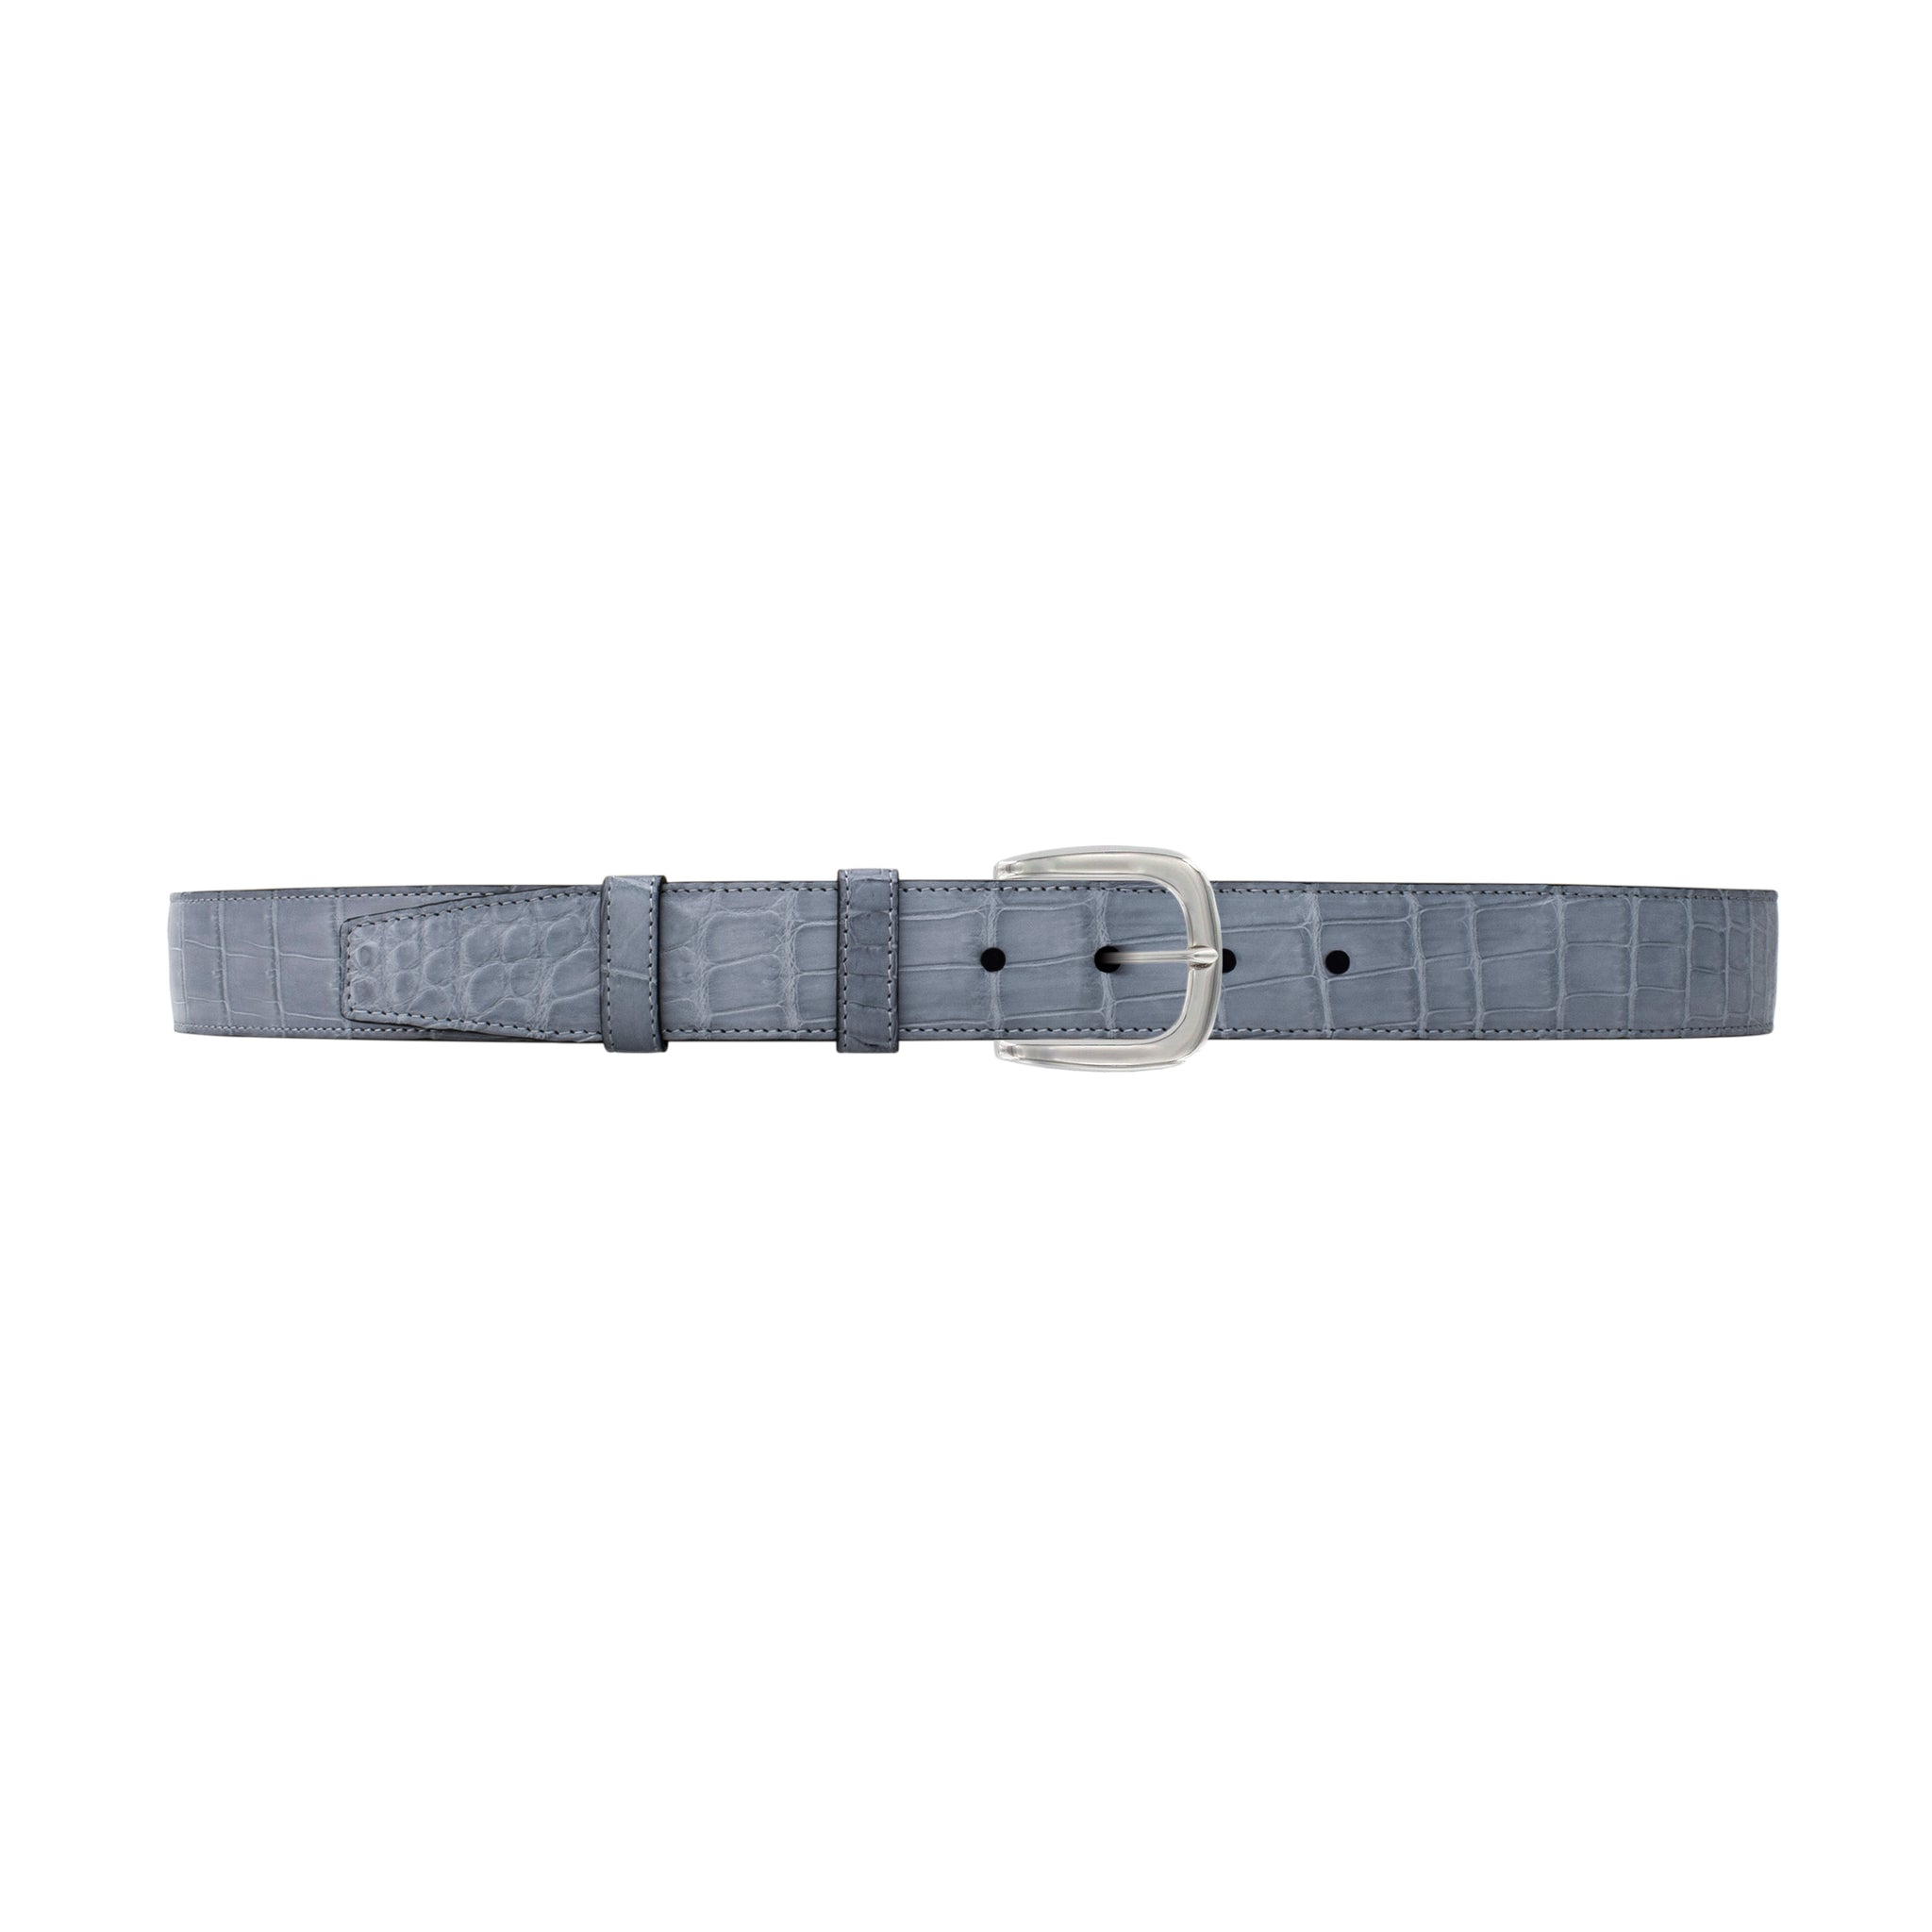 "1 1/4"" Slate Seasonal Belt with Oxford Cocktail Buckle in Polished Nickel"